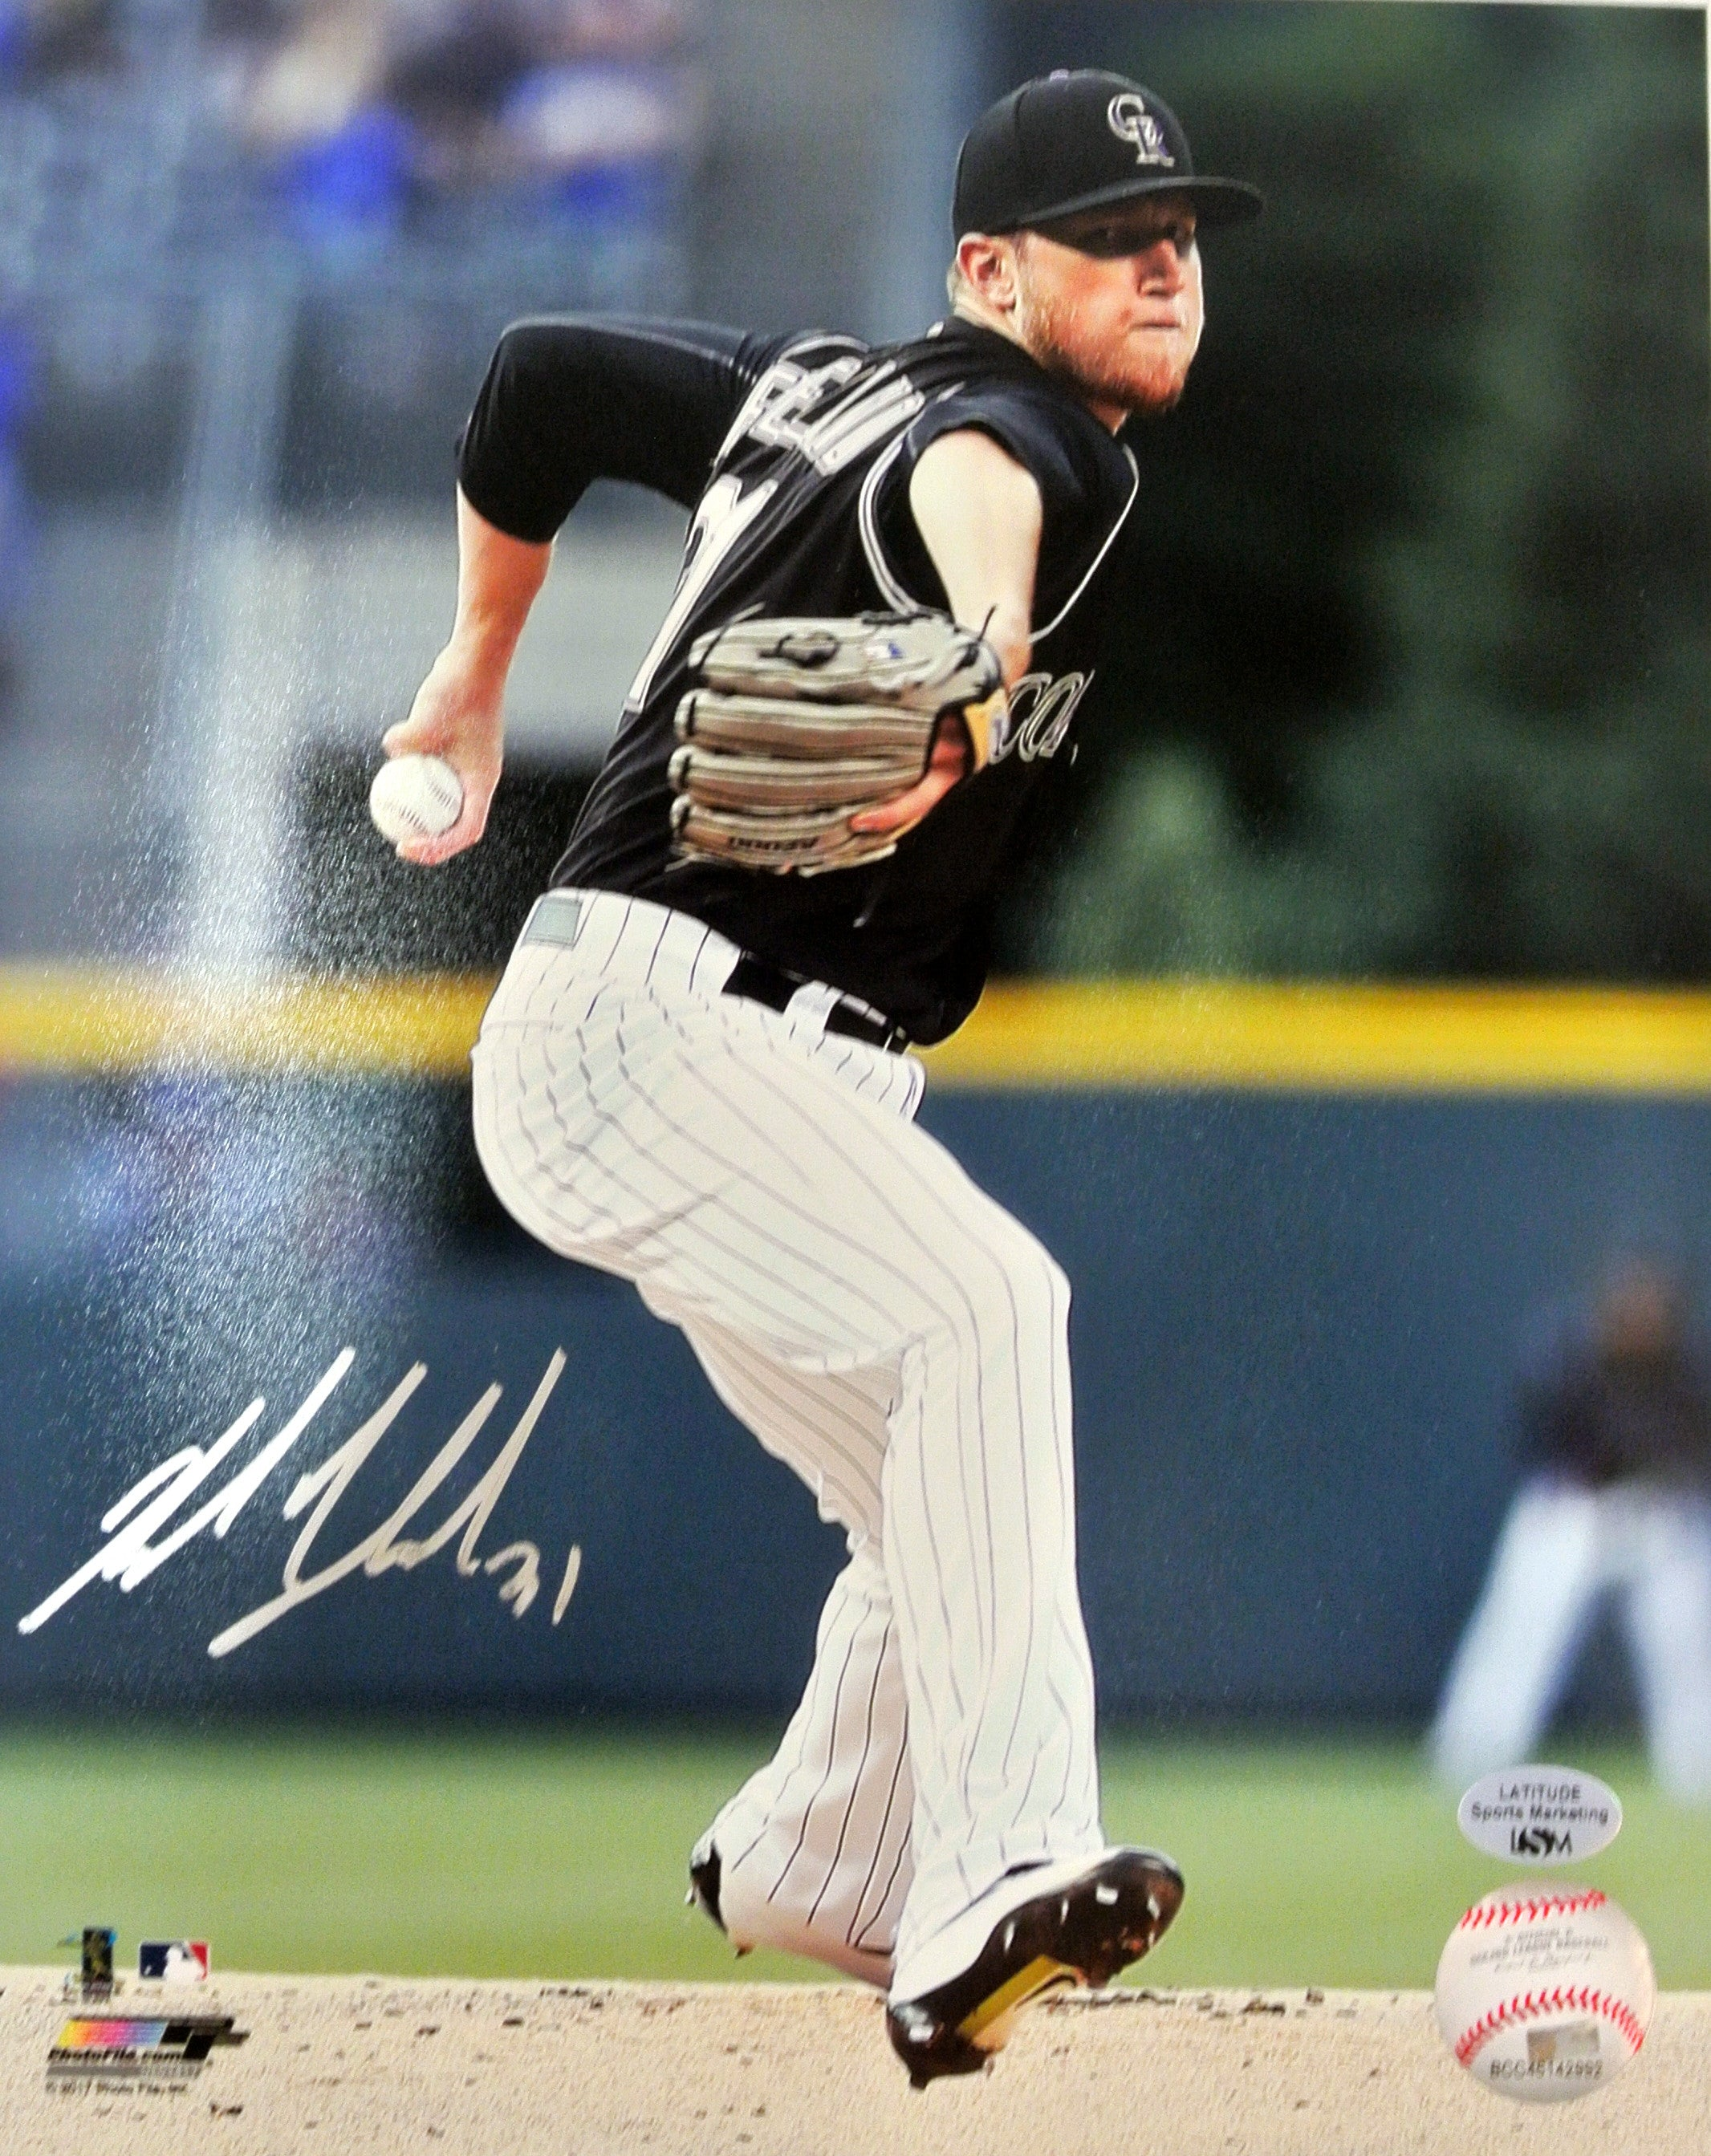 Kyle Freeland Signed Action 8x10 Photo (Blowout)